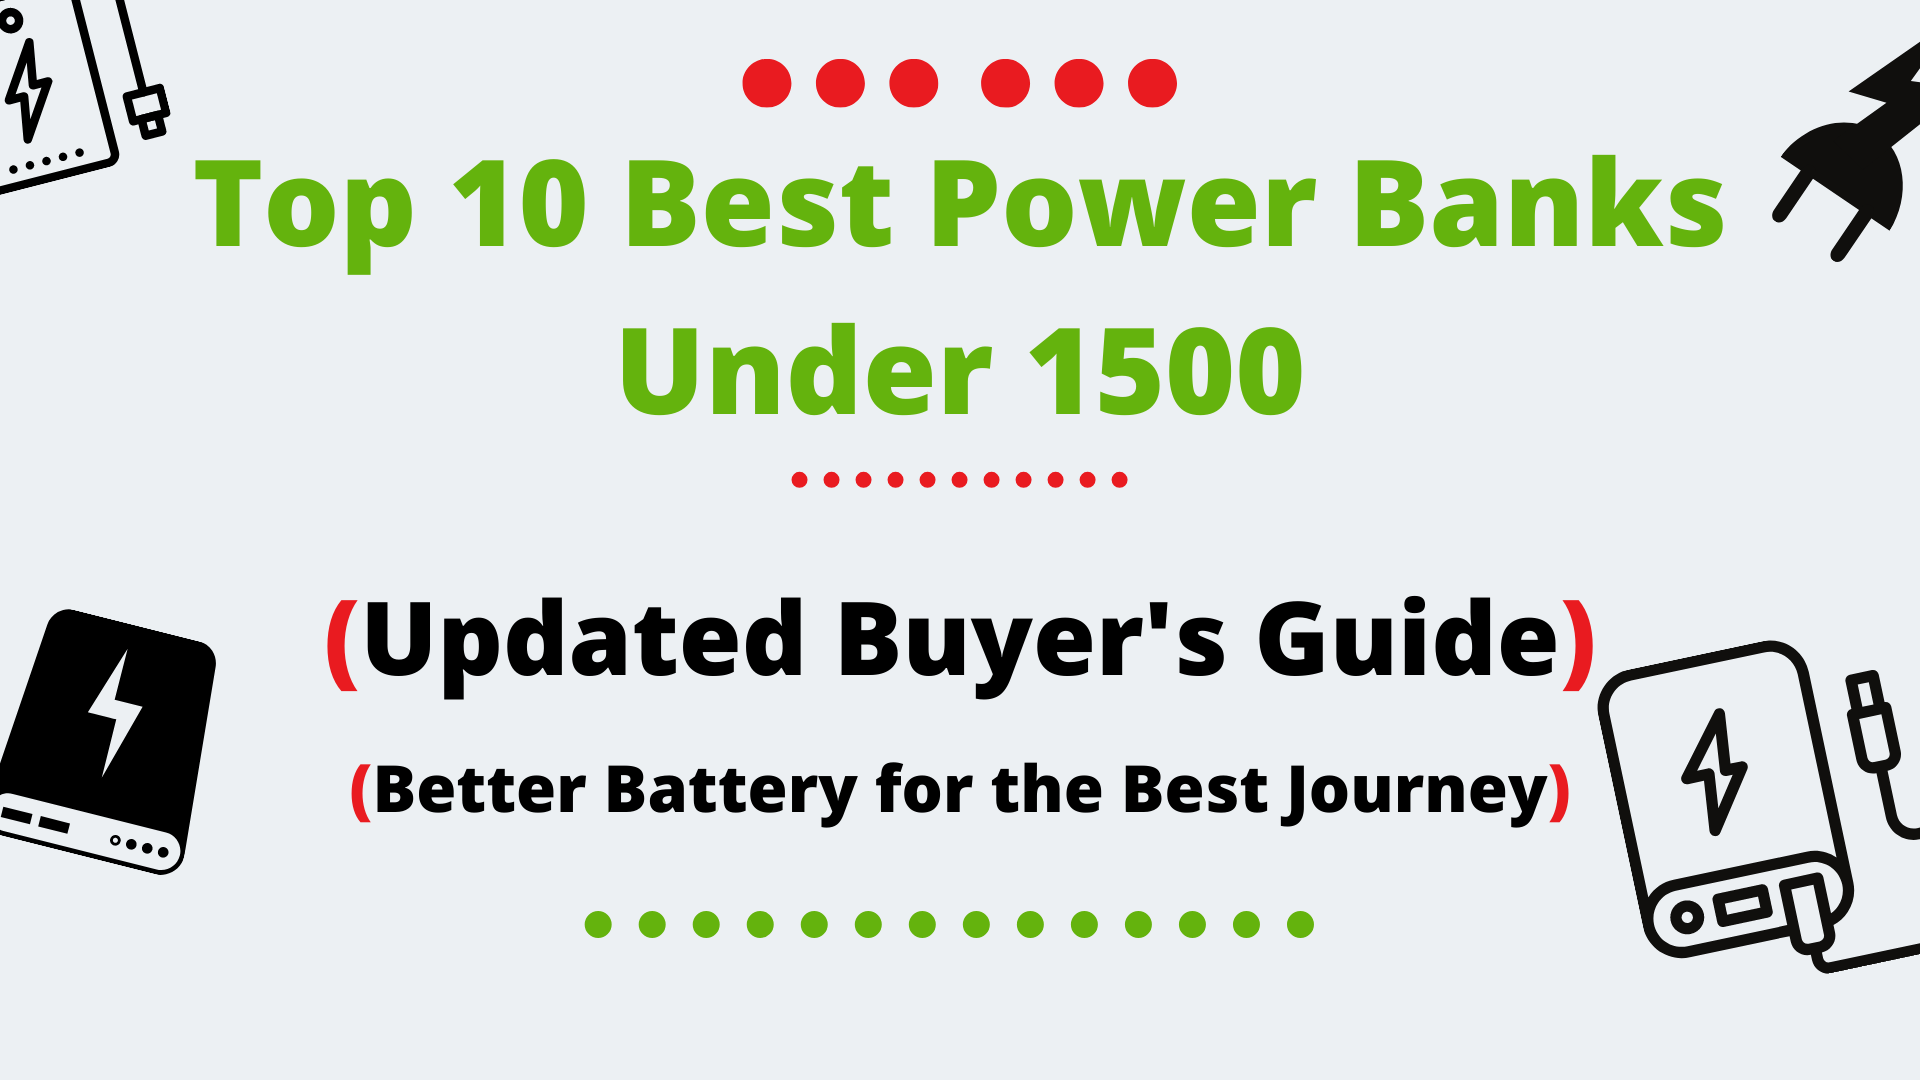 Best Power Banks Under 1500